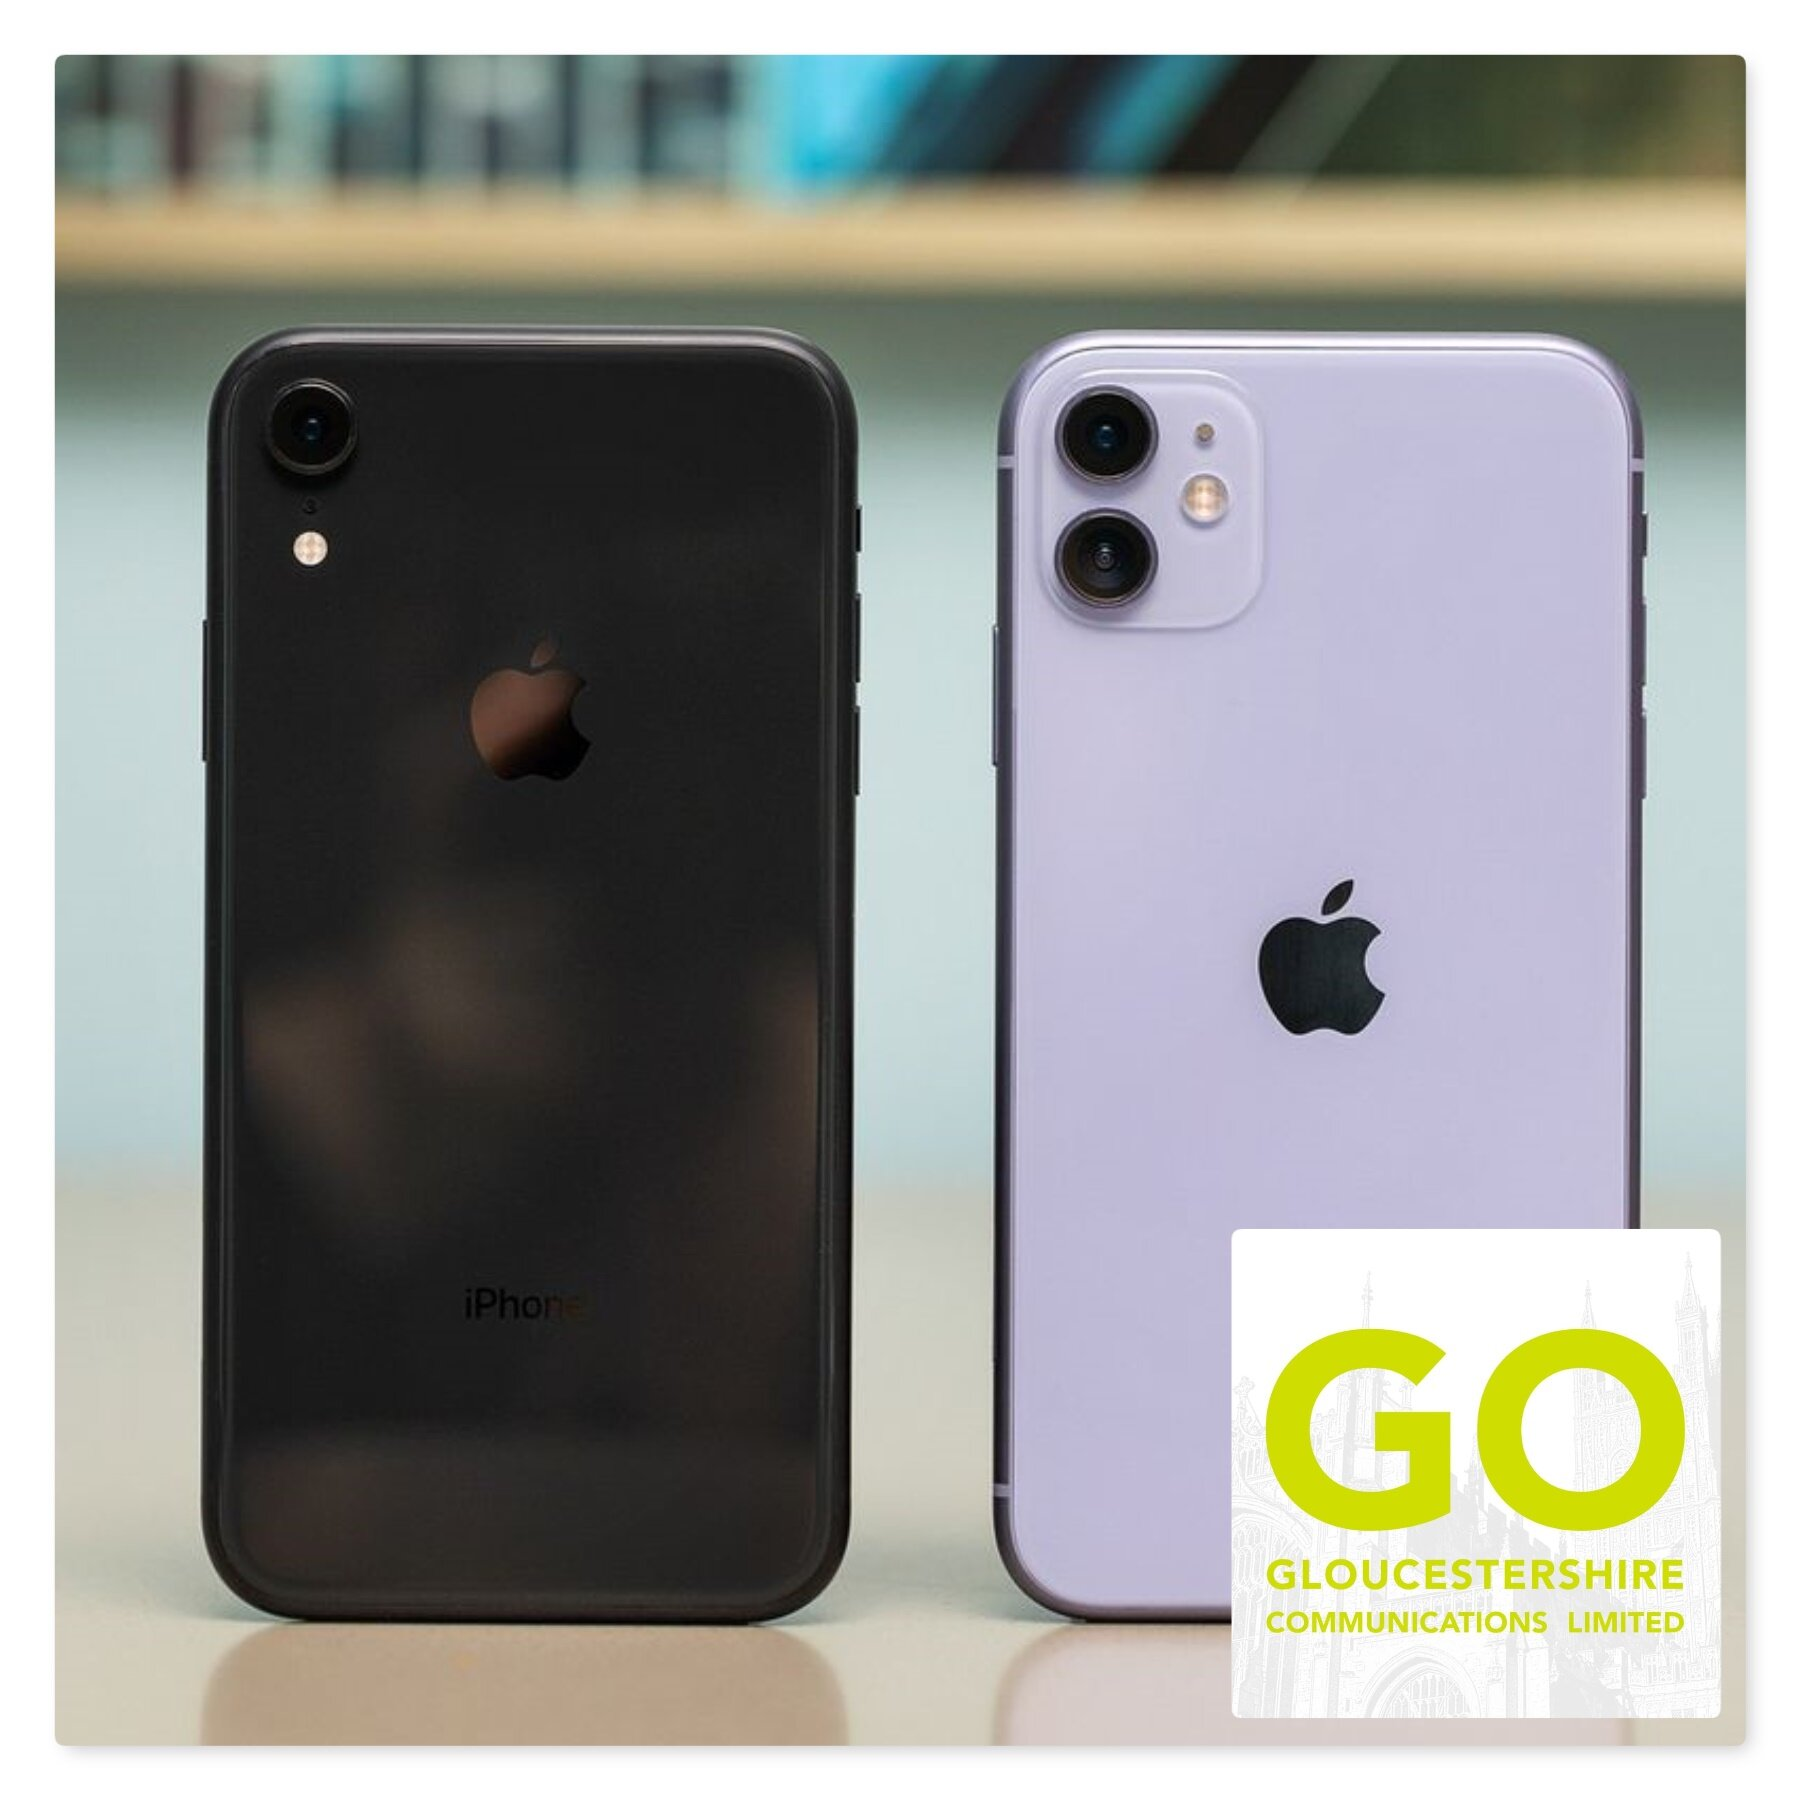 Iphone 11 Ee Business Mobile Double Data Offer 100 Gb For The Price Of 50 Gb Go Gloucestershire Communications Ltd